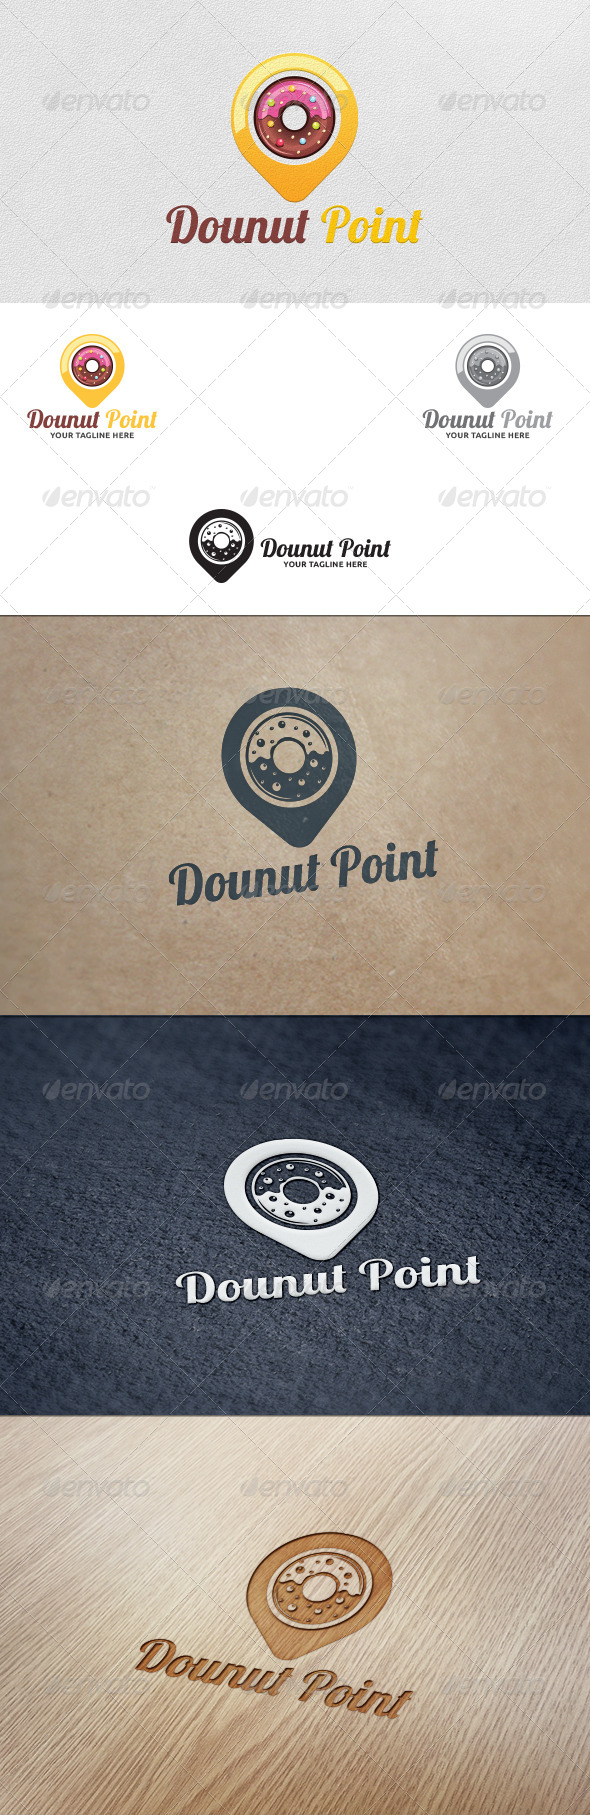 GraphicRiver Donut Point Logo Template 5588836